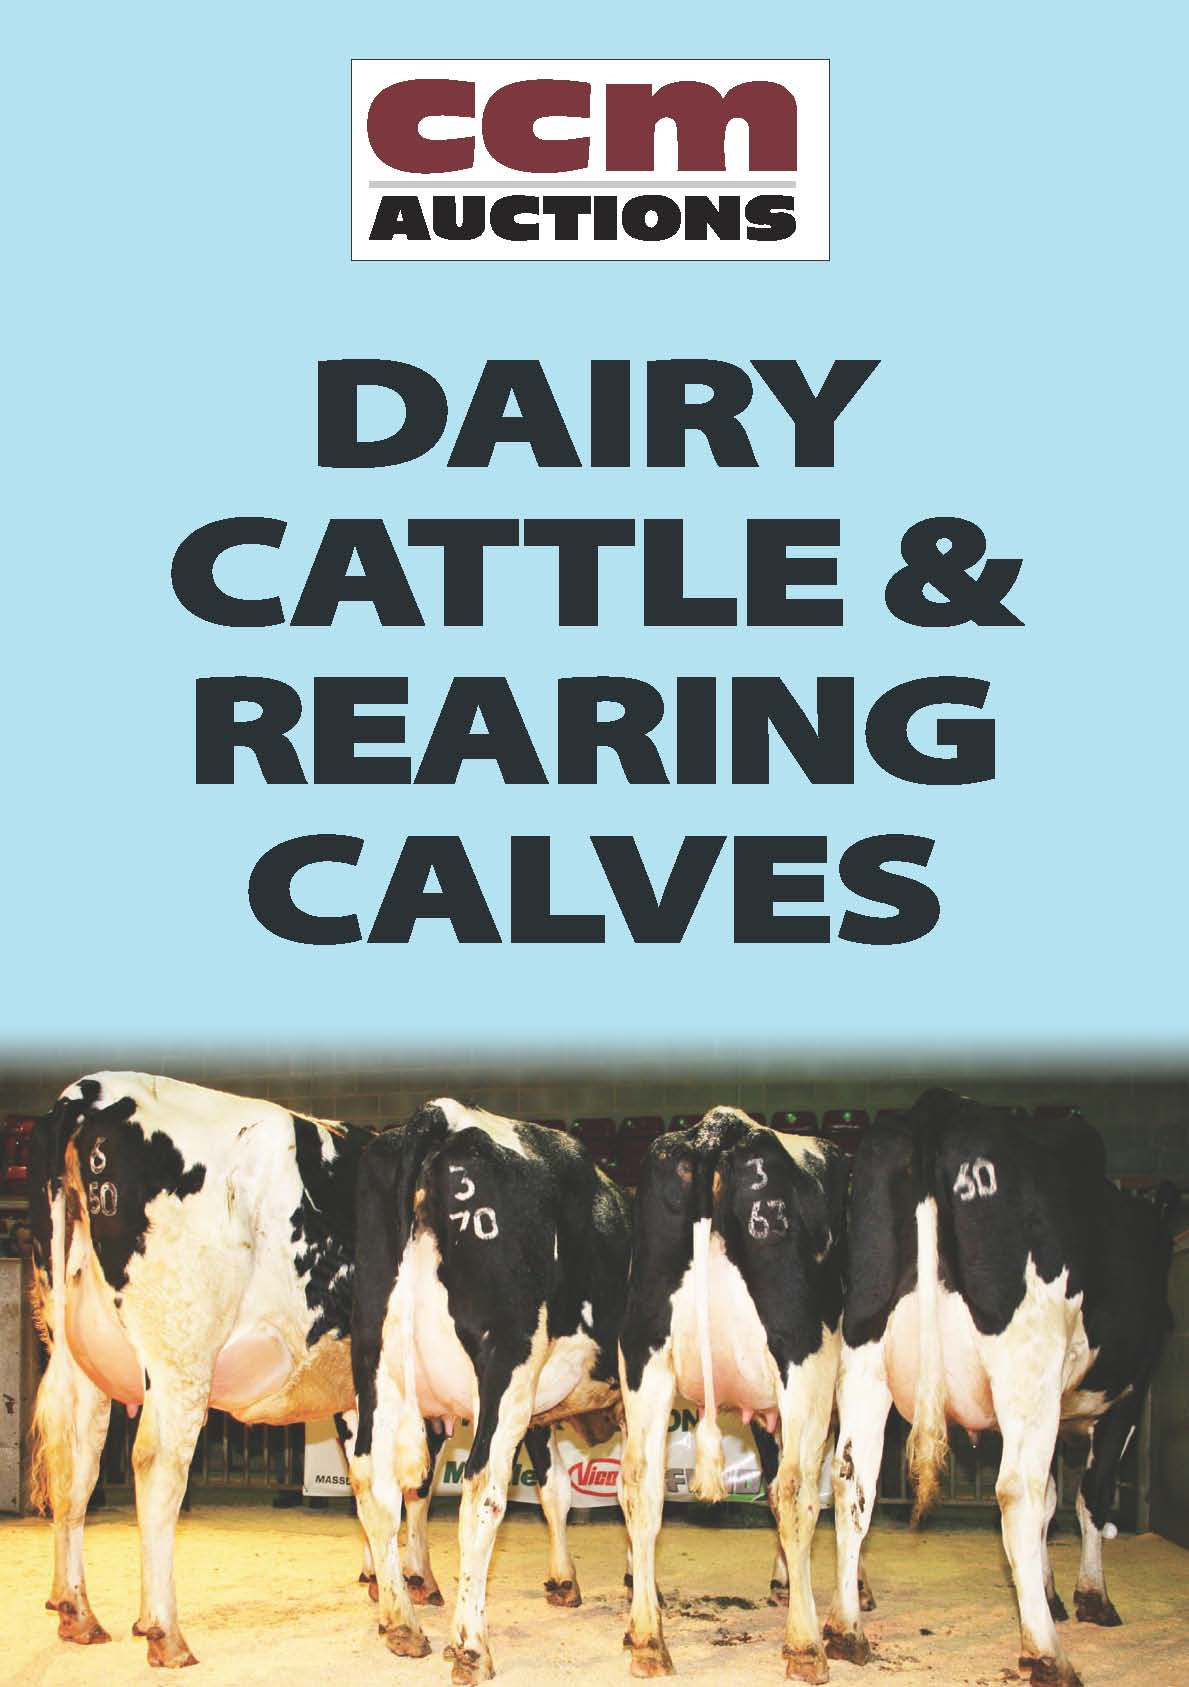 DAIRY & CALVES - MONDAY 25TH APRIL 2016